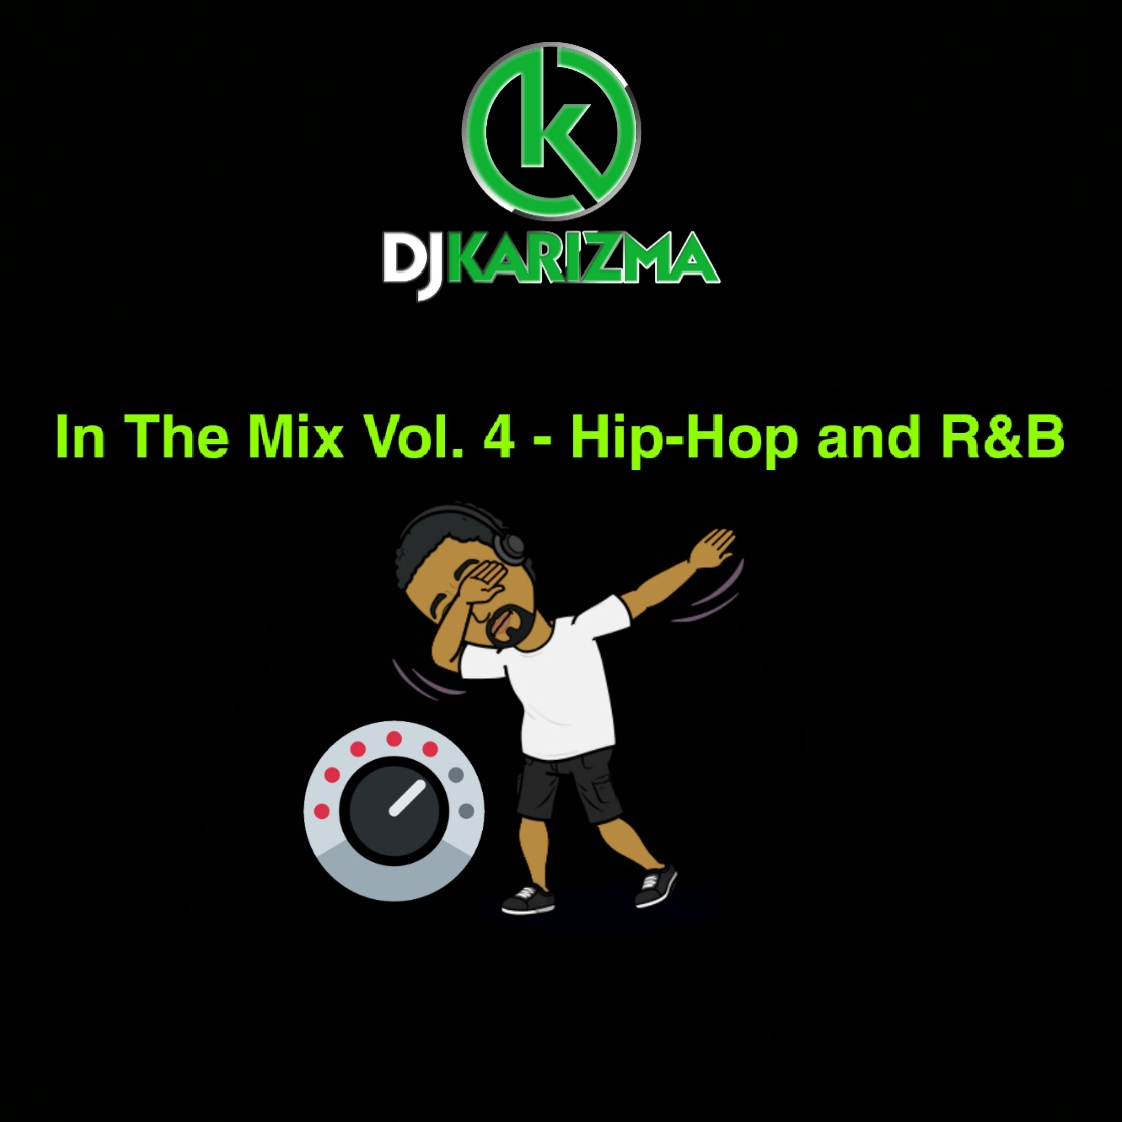 In The Mix Vol  4 - Hip-Hop and R&B - Karizma